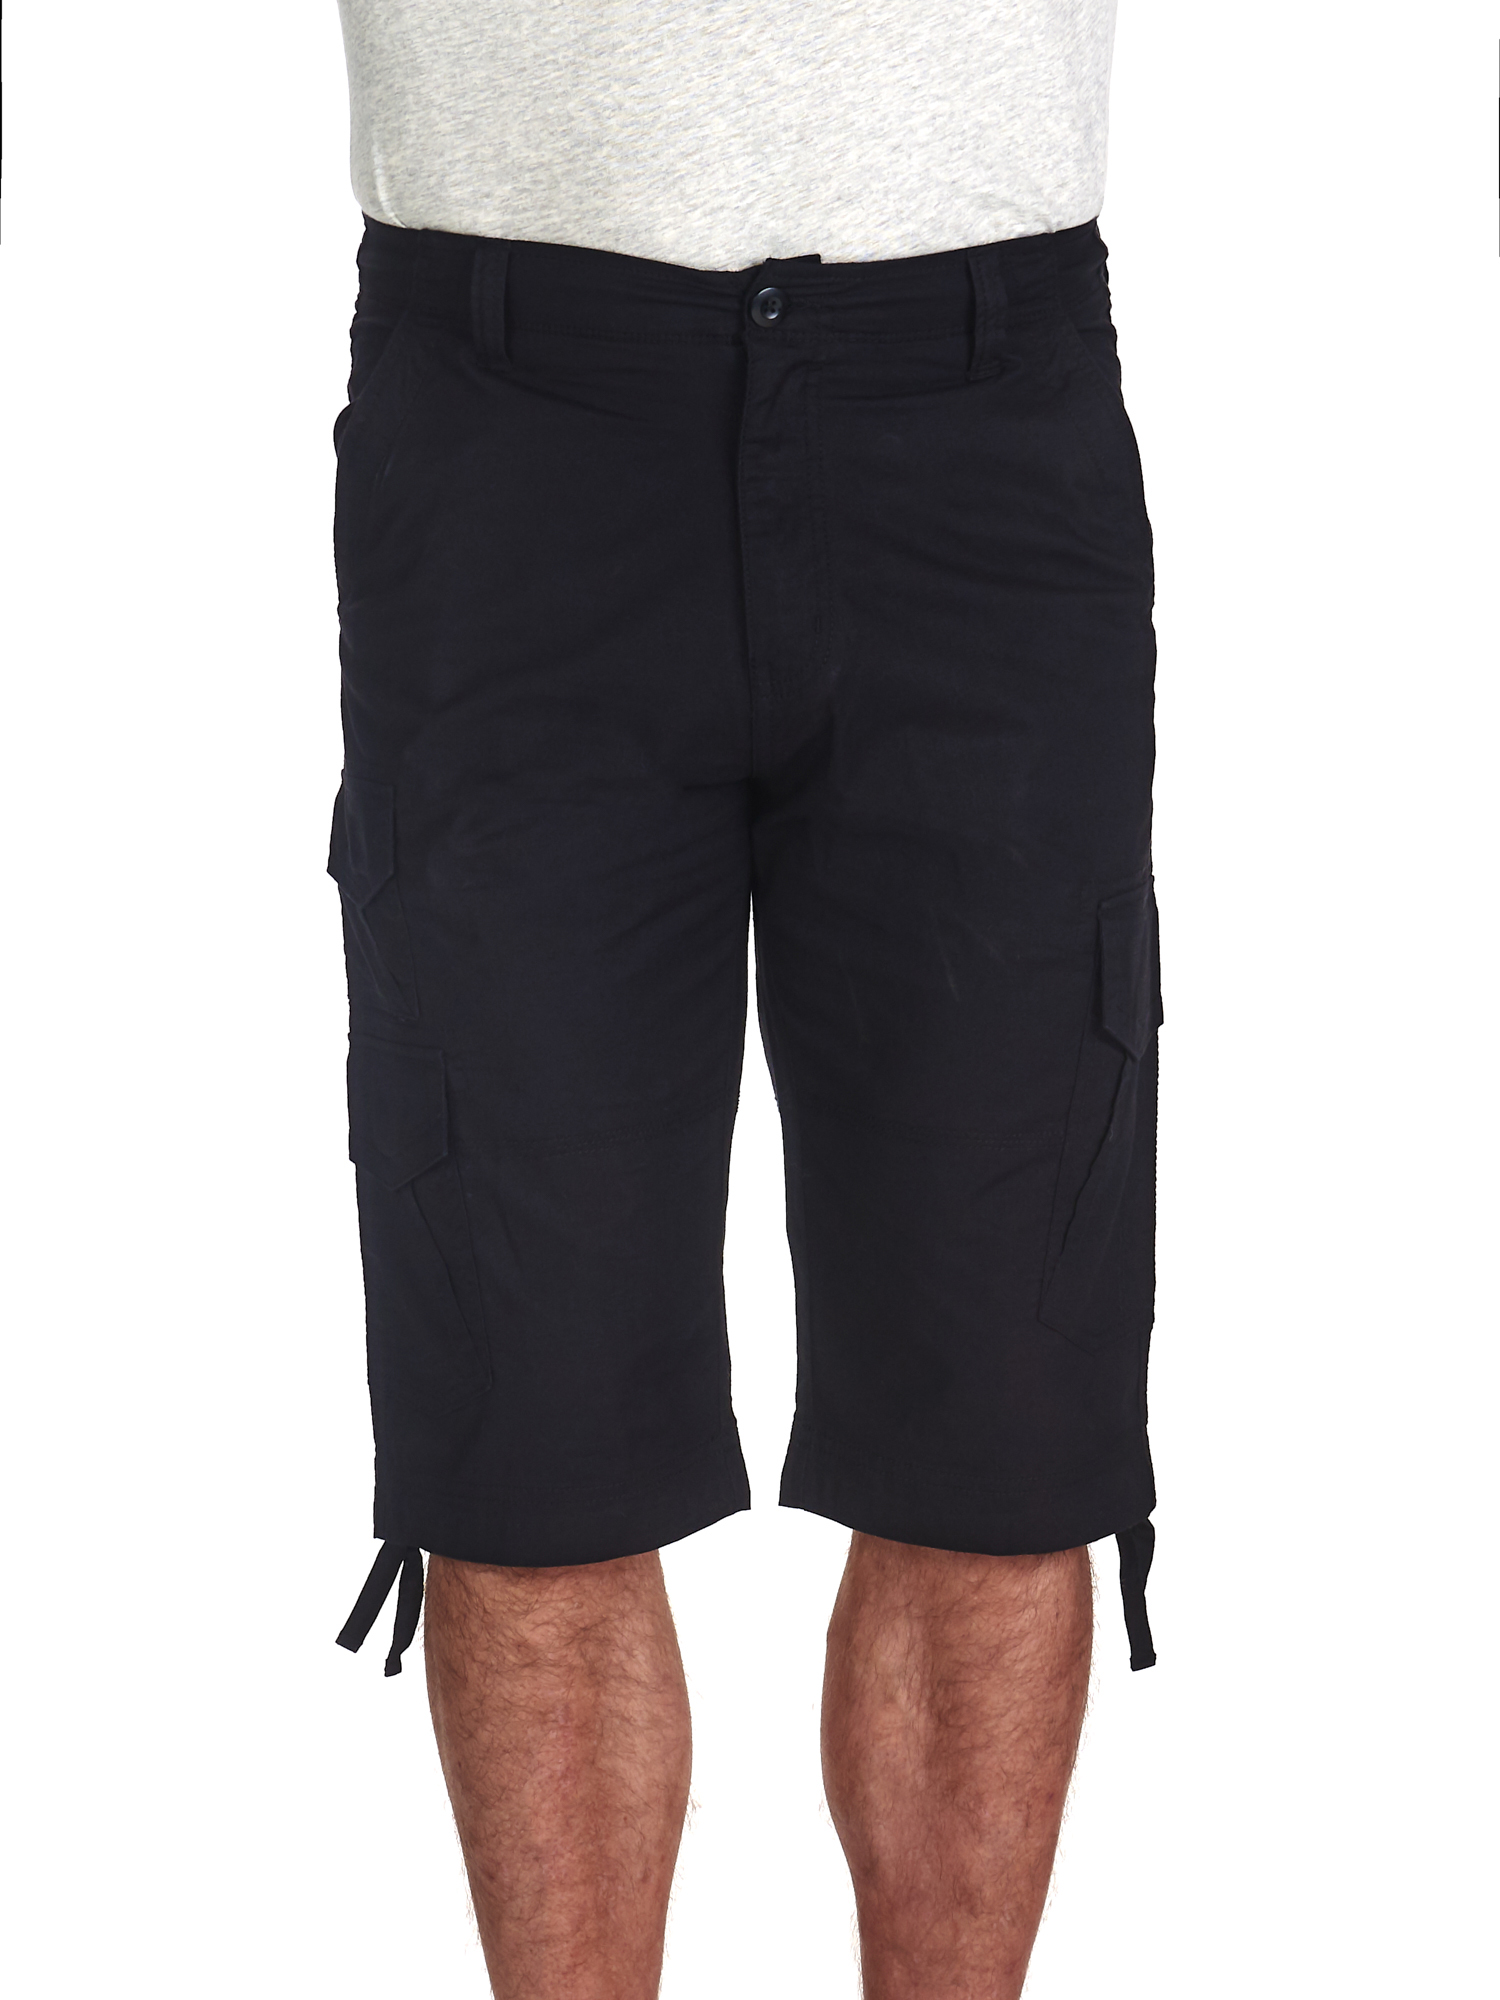 30, Red Mens Basic Belted Hip Hop Long Cargo Shorts P210AS